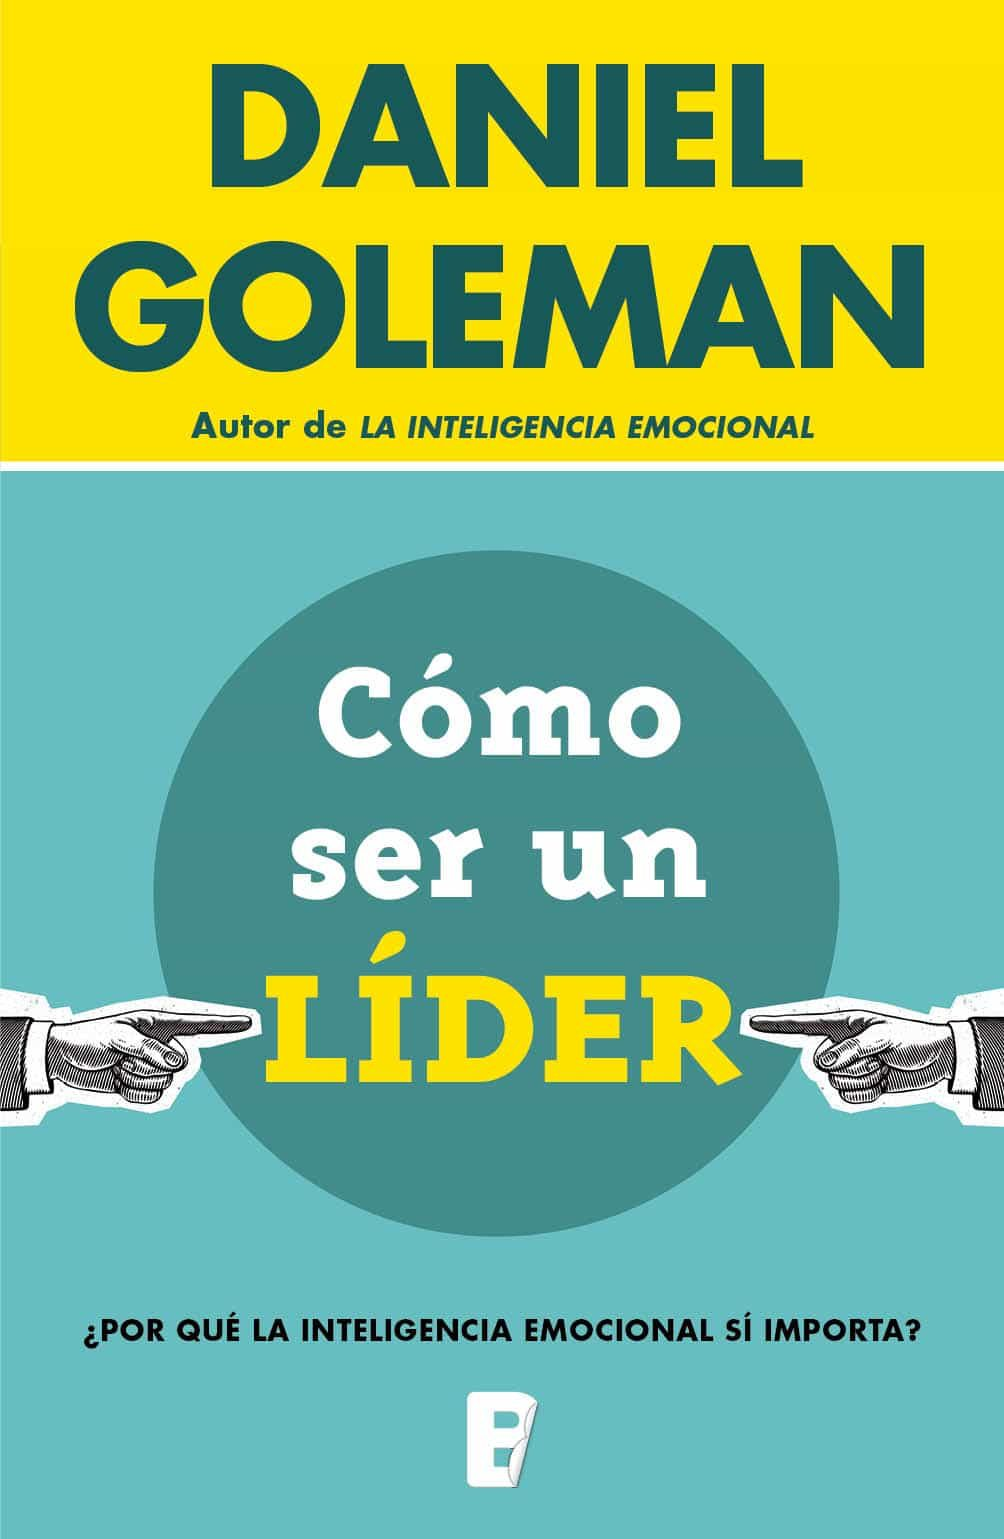 Daniel Goleman Ebook